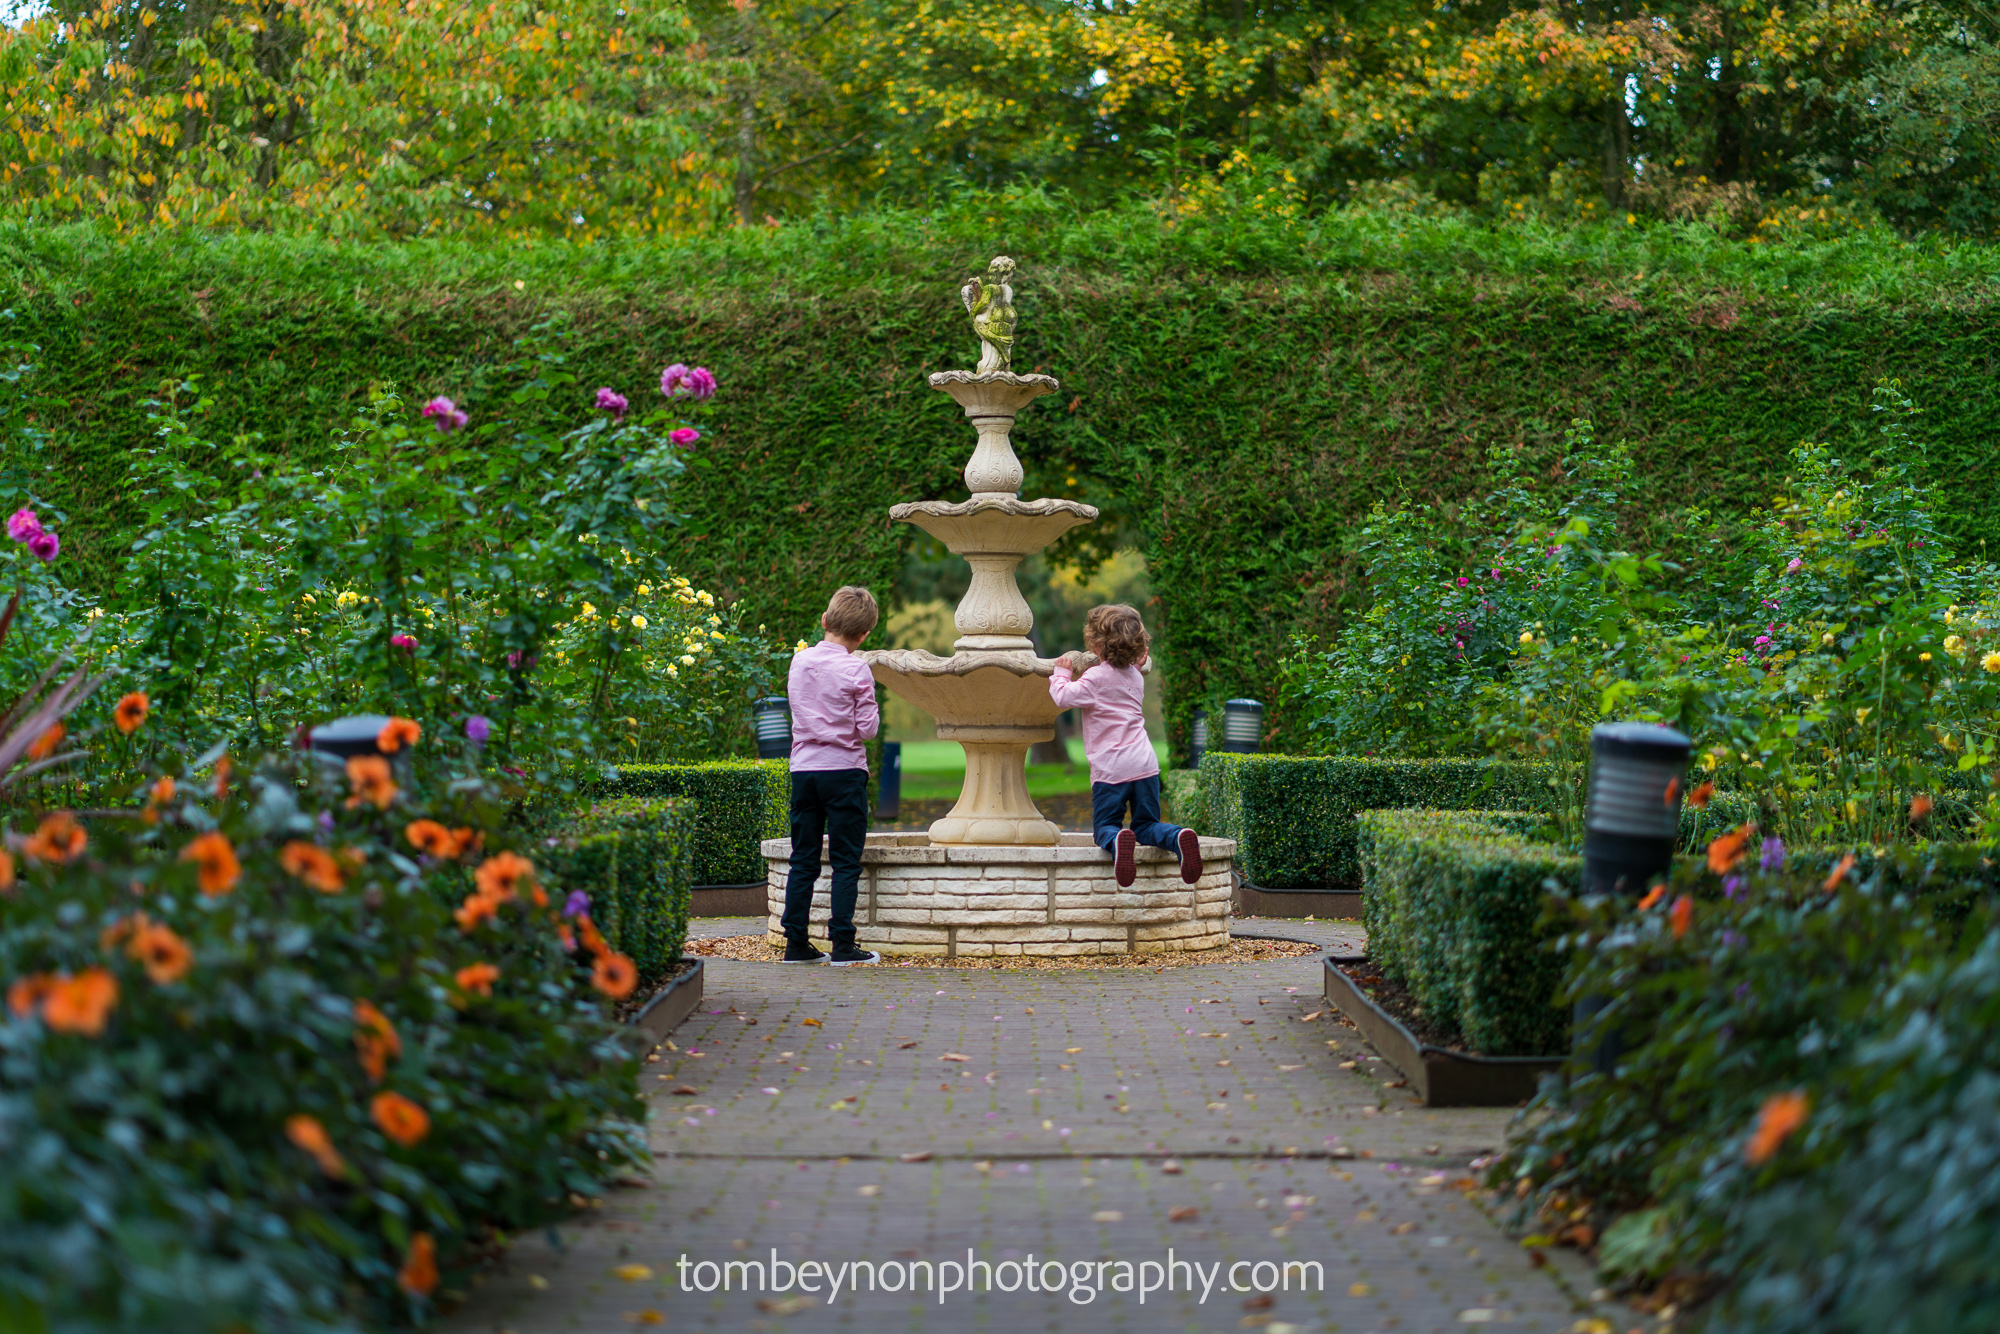 Kids playing in the fountains of Rodbaston Hall